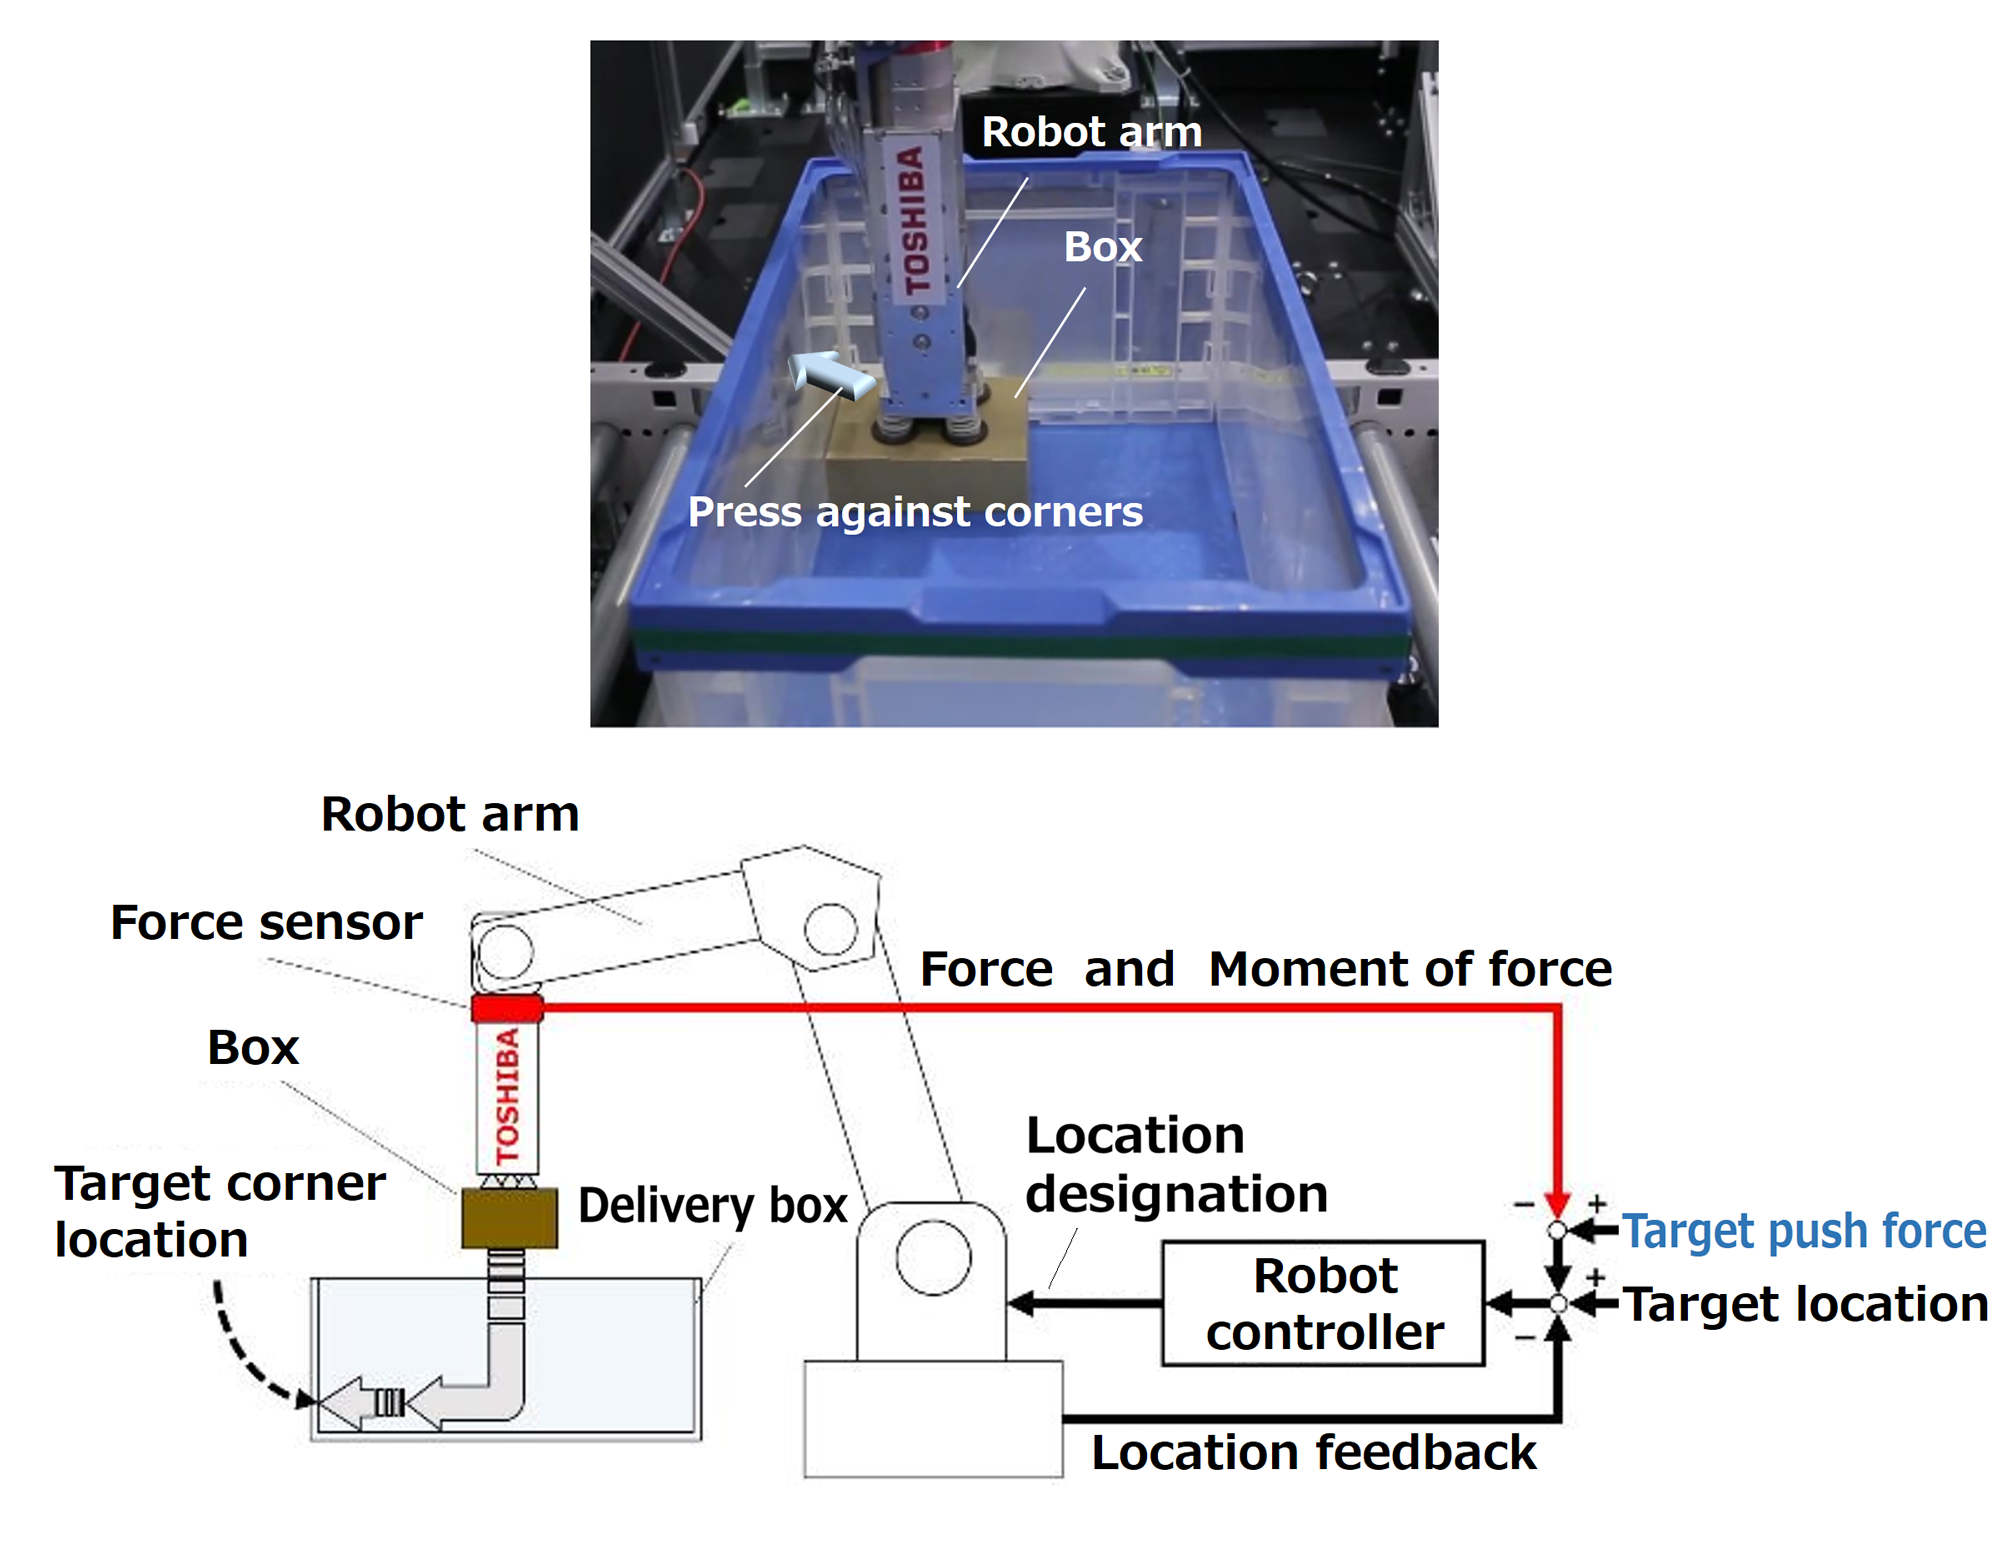 The robot arm's force sensor, which detects contact between boxes and walls, allows it to place boxes at the edge of a container, as a human being would.